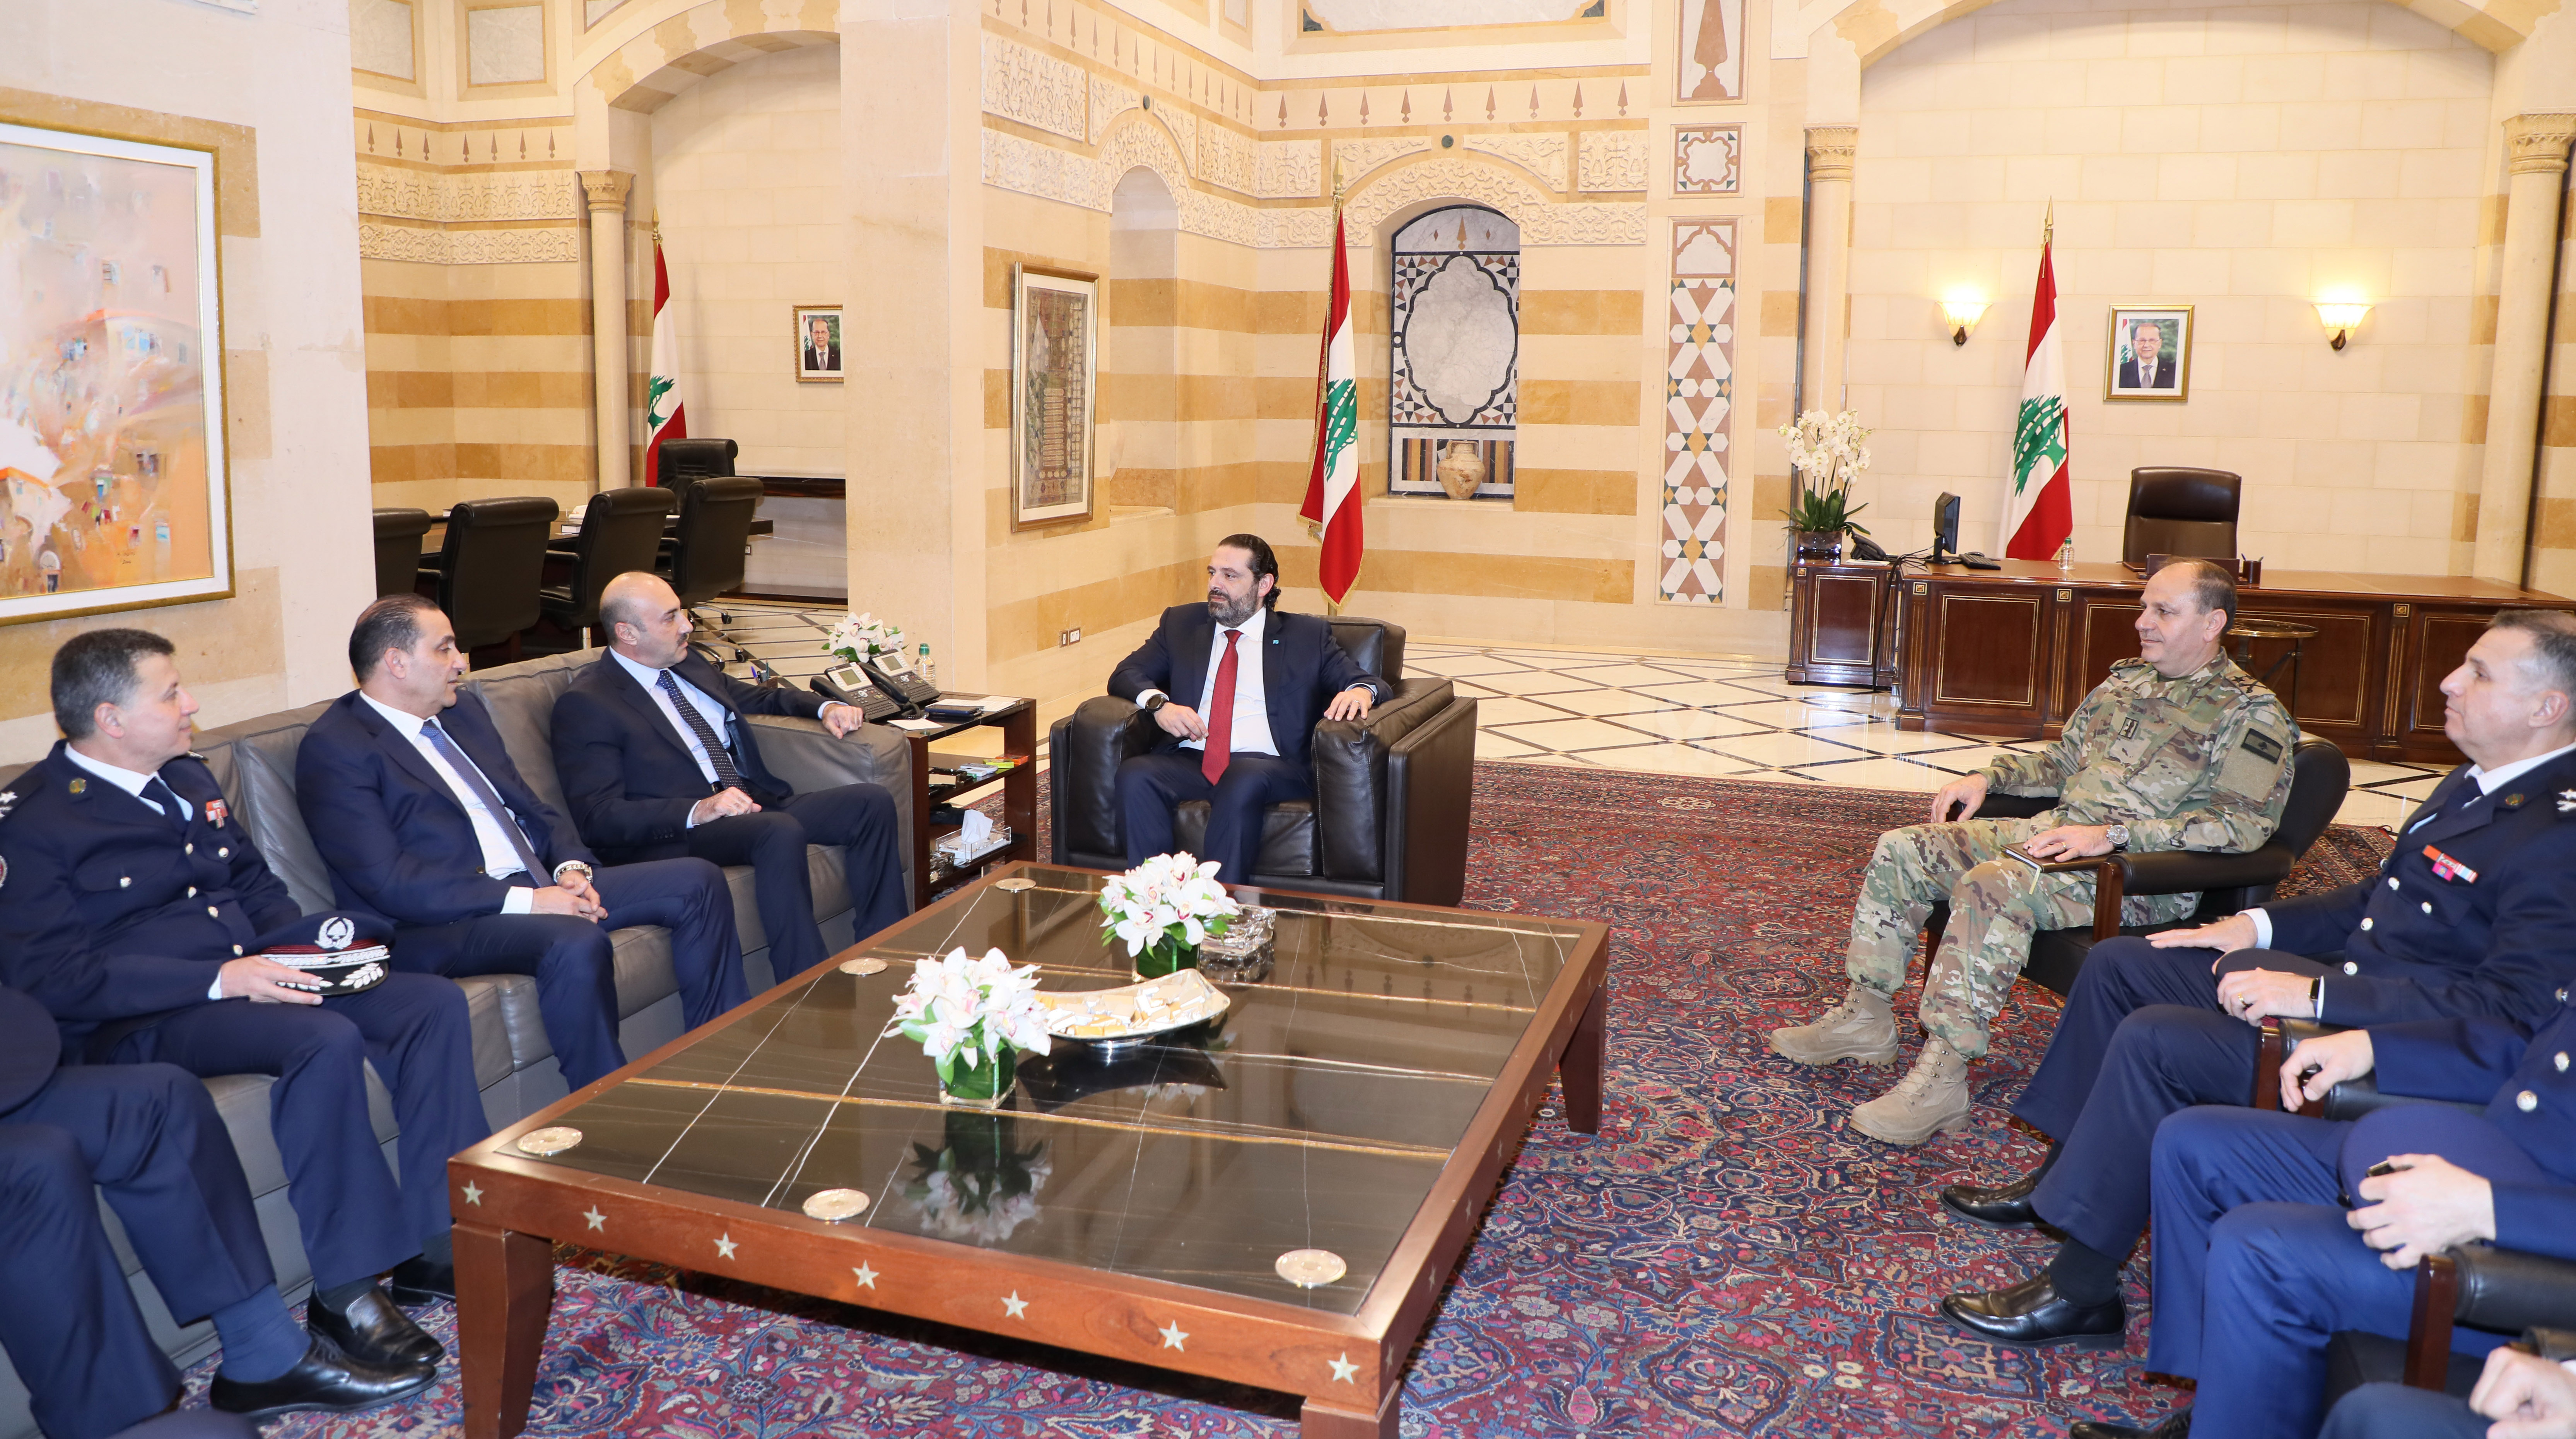 Pr Minister Saad Hariri meets a Delegation from Security State